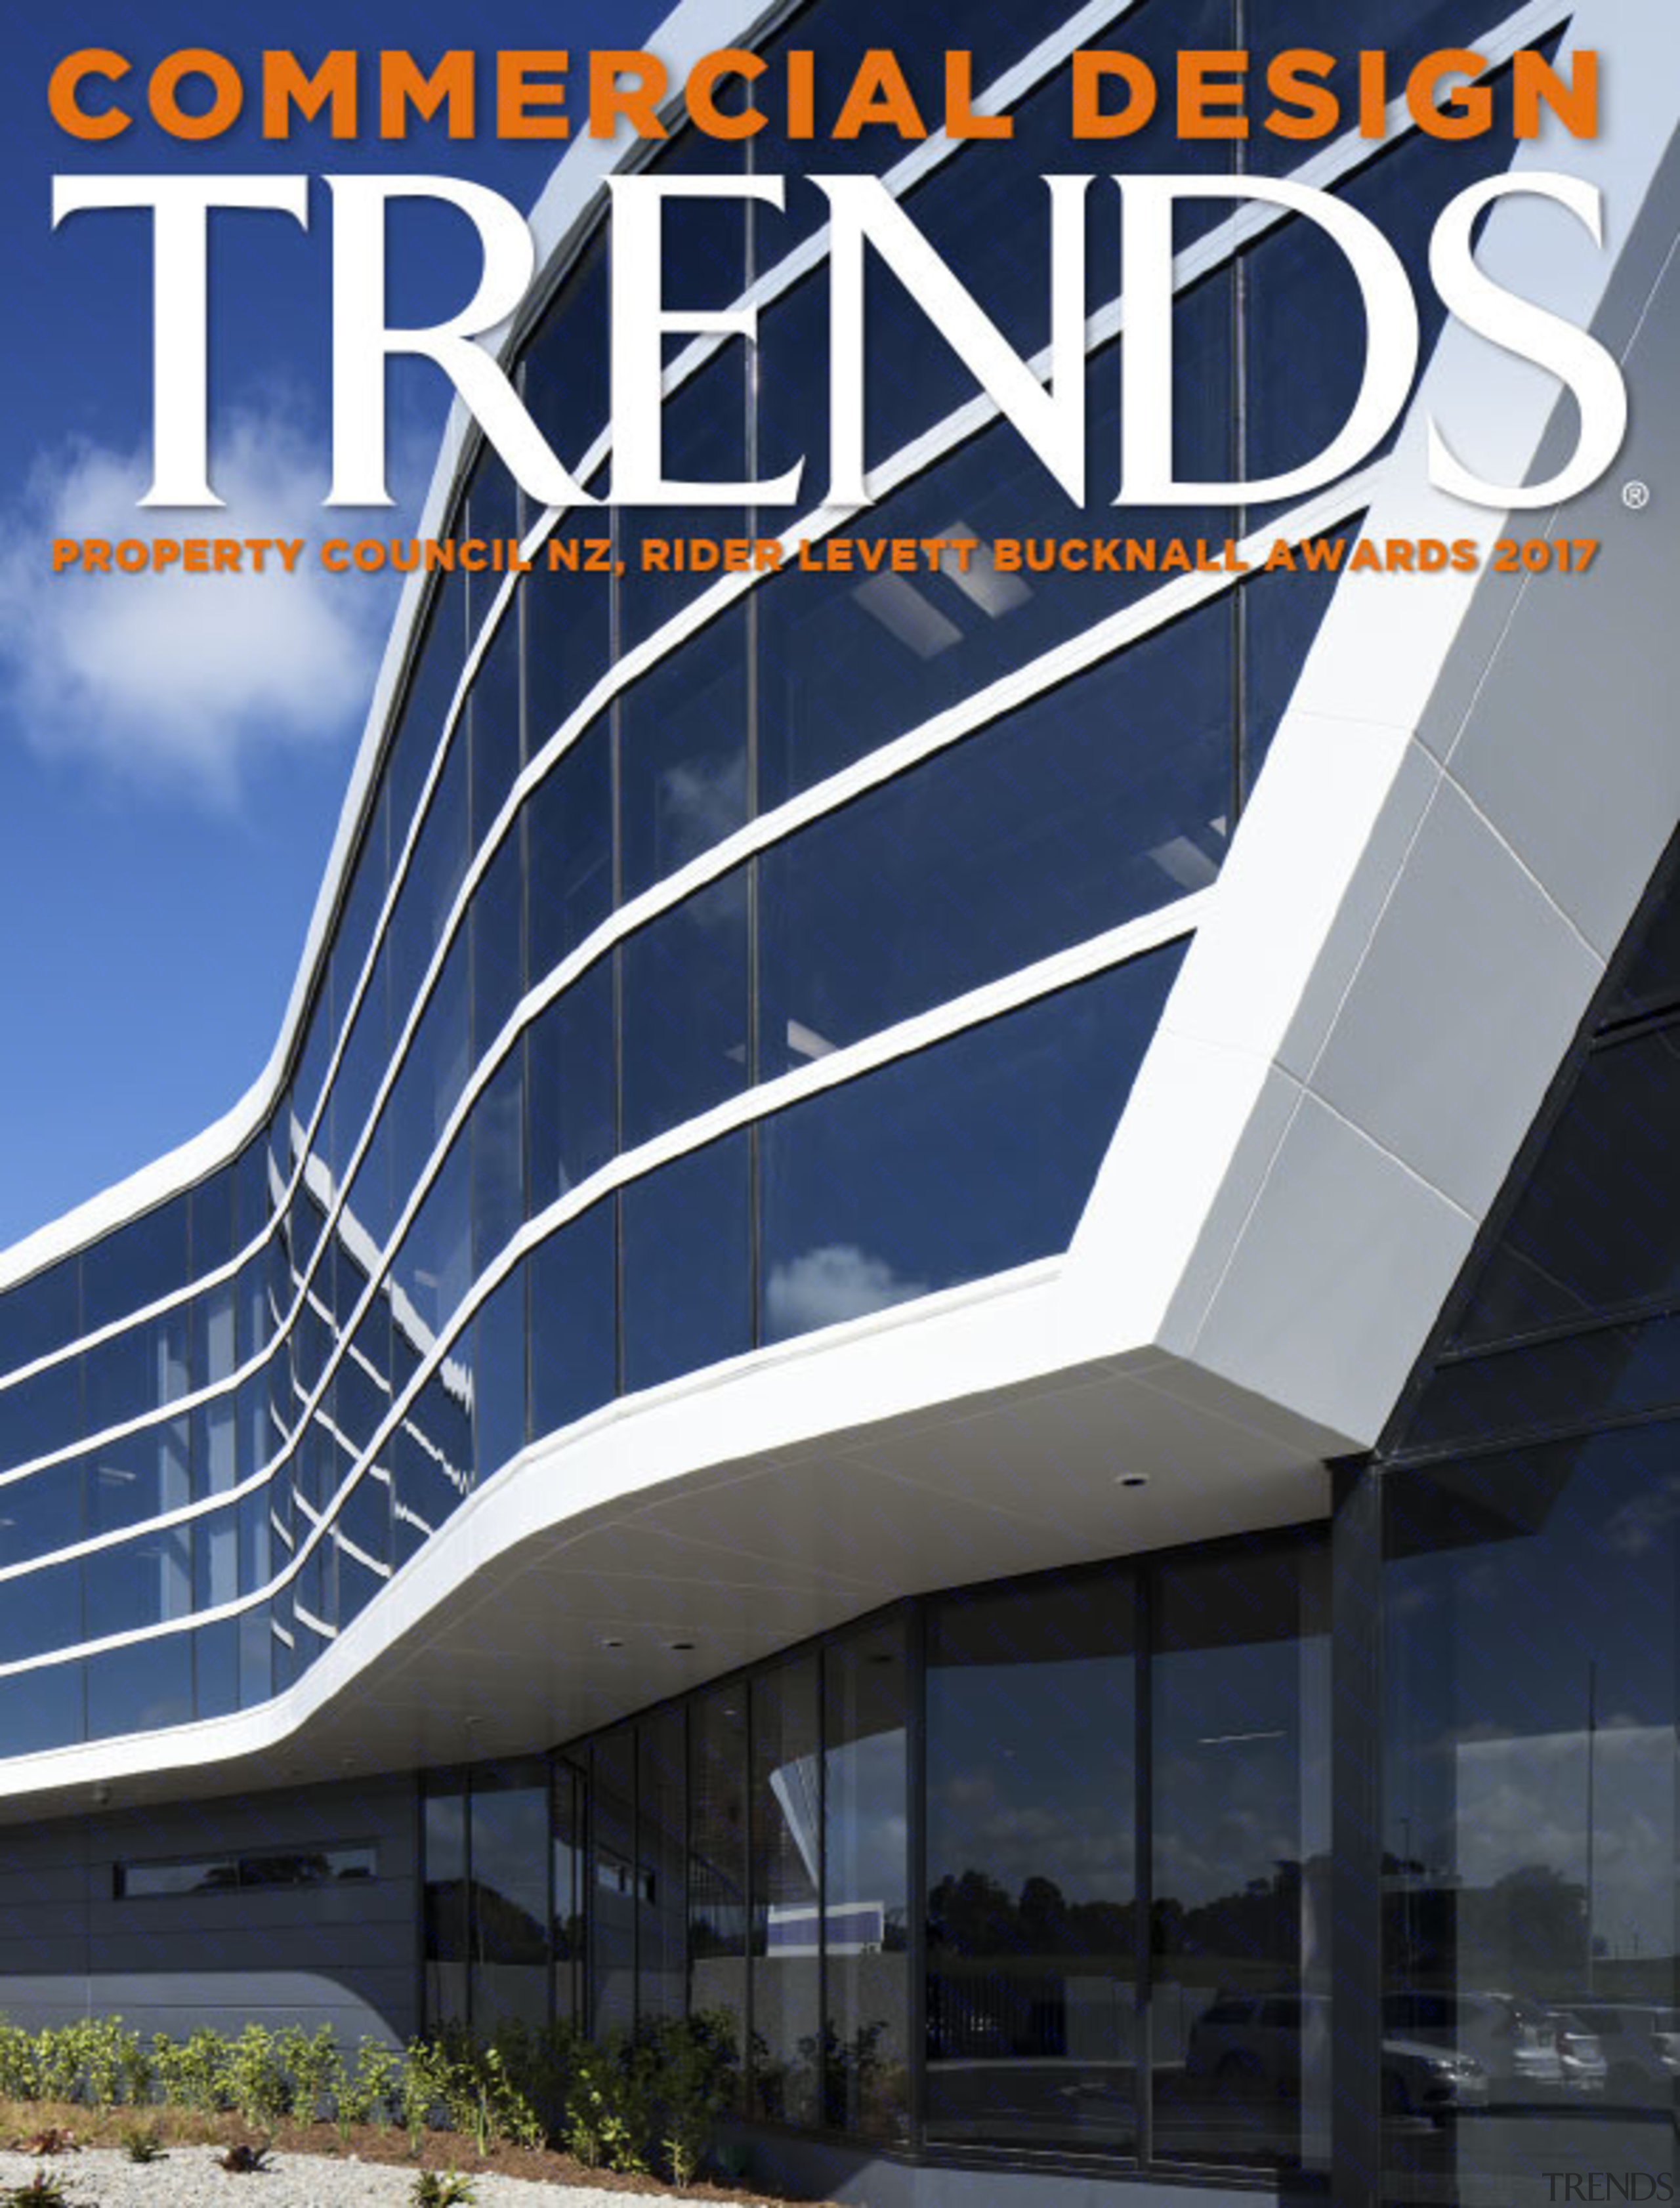 Nz332C Cover Ebook architecture, building, corporate headquarters, daylighting, facade, structure, blue